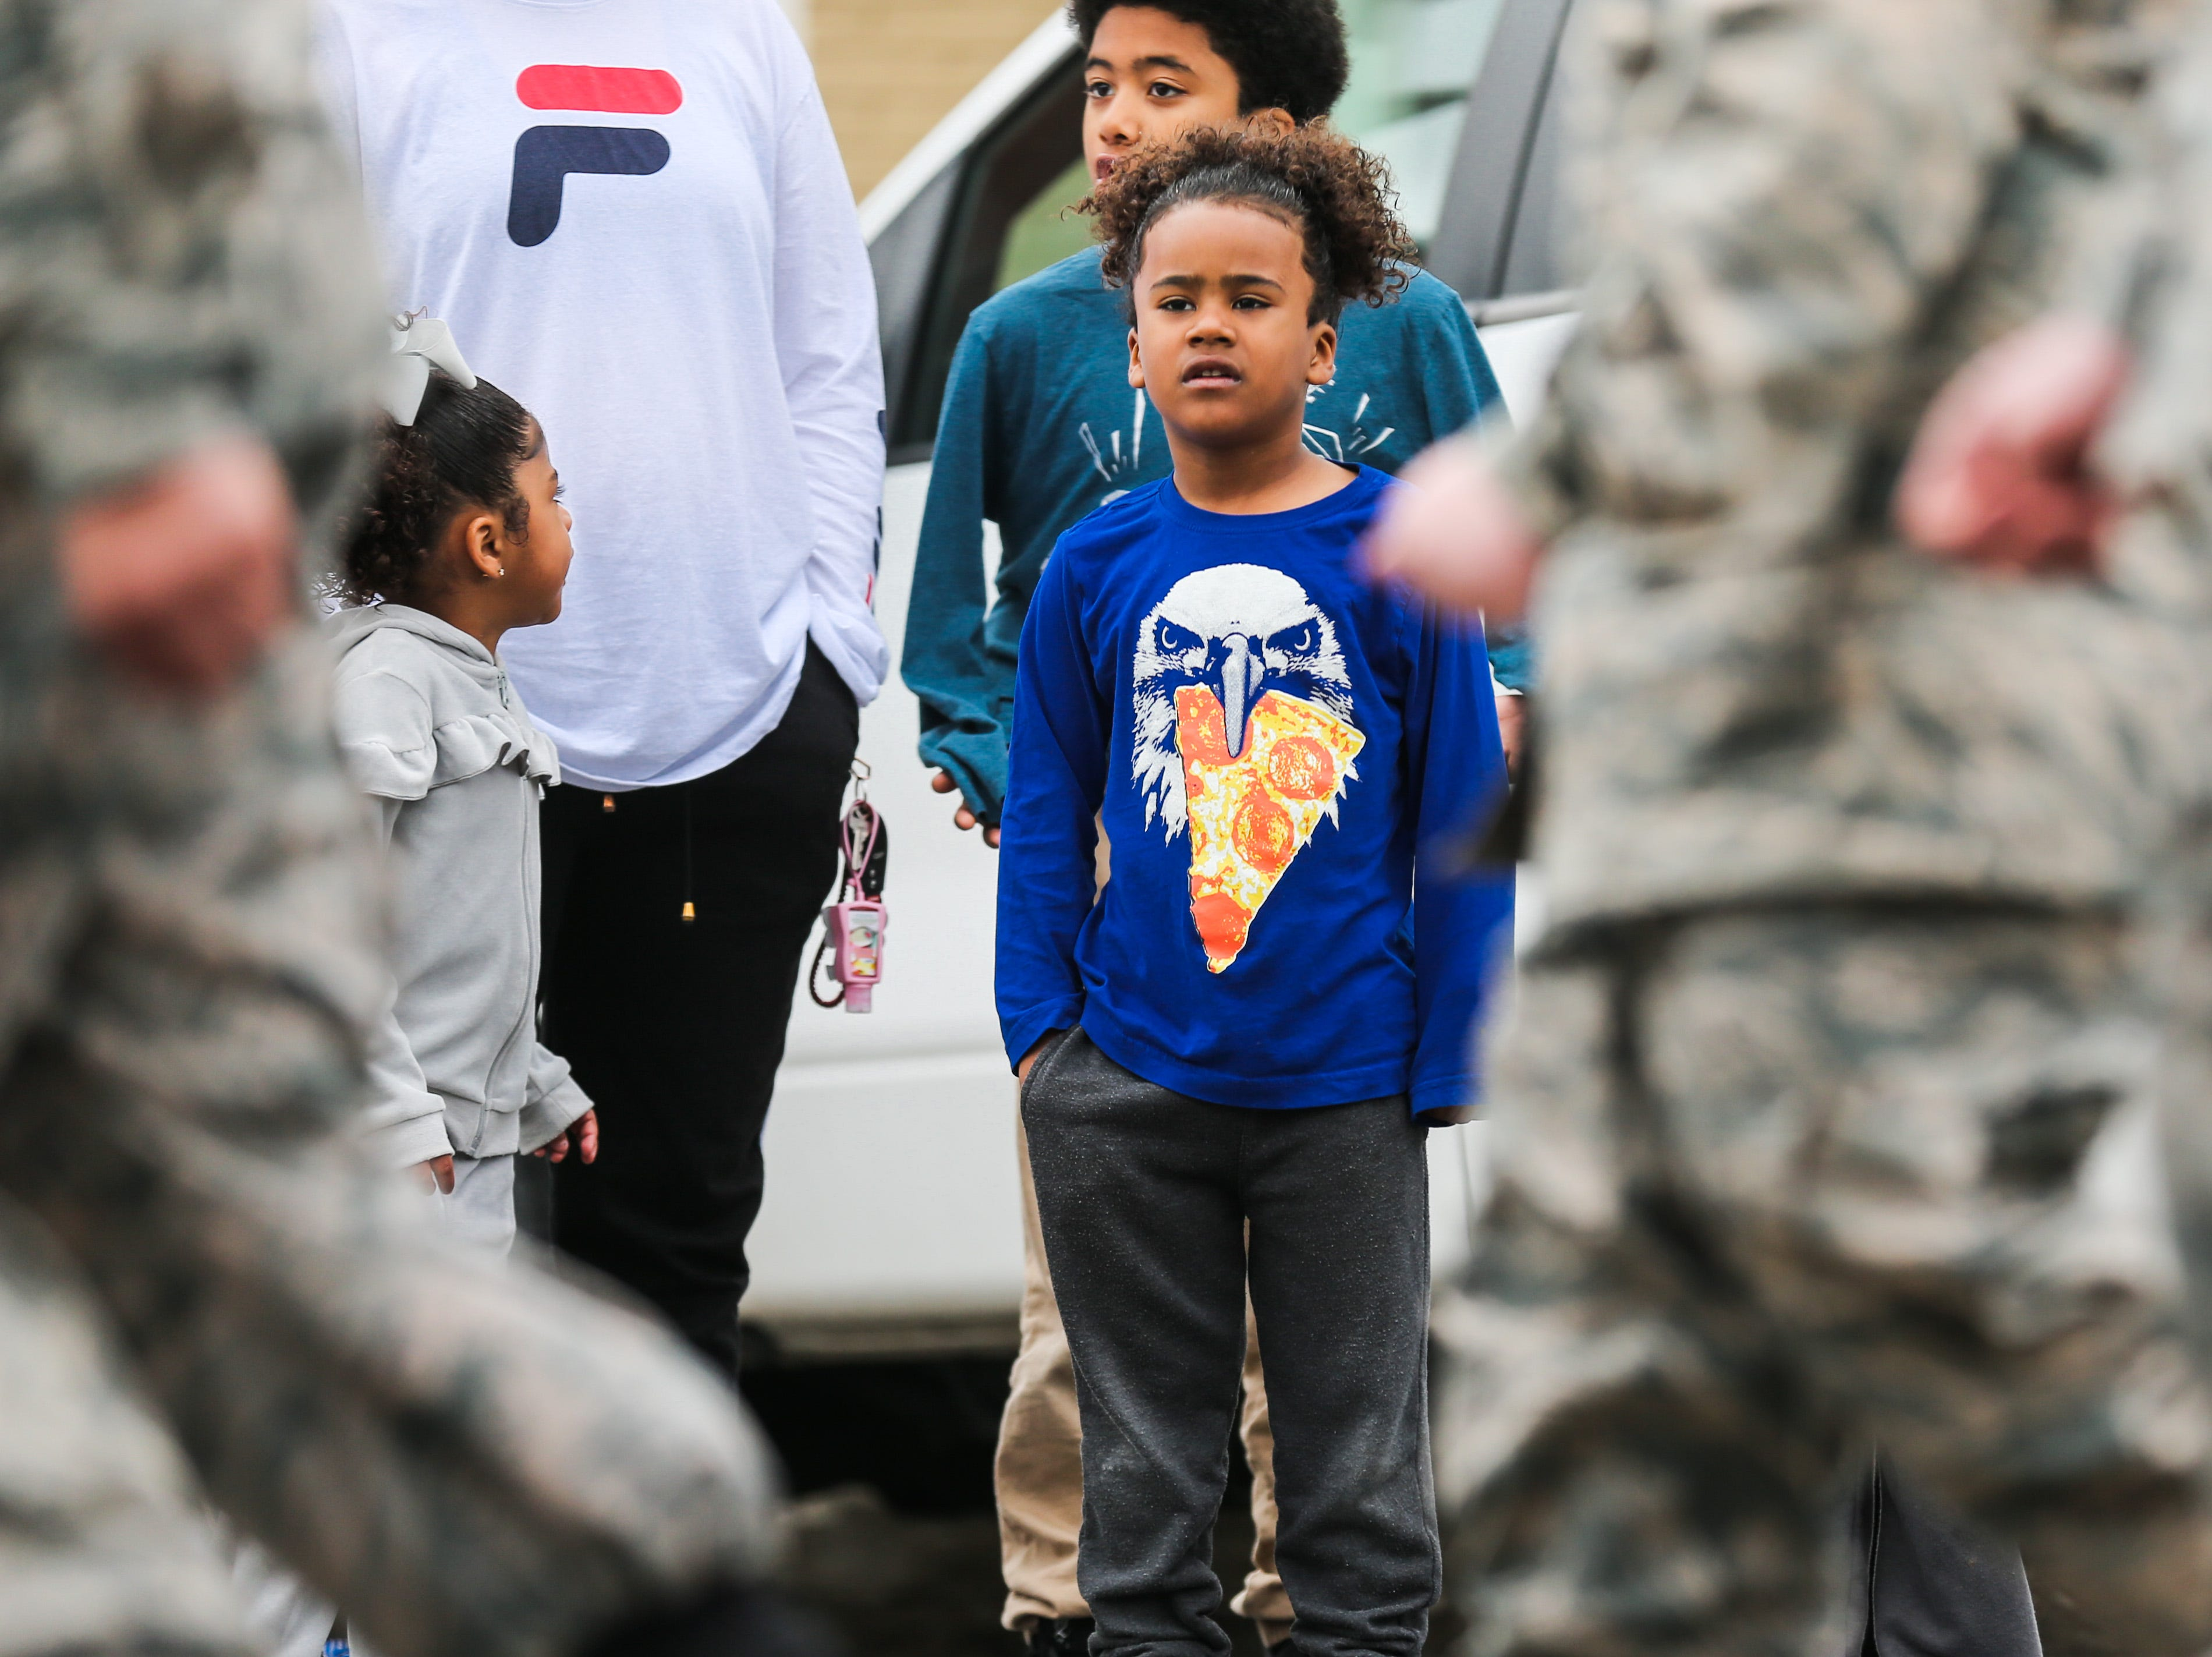 Spectators watch ROTC members march during the San Angelo Stock Show and Rodeo Parade to start Saturday, Feb. 2, 2019, in downtown San Angelo.